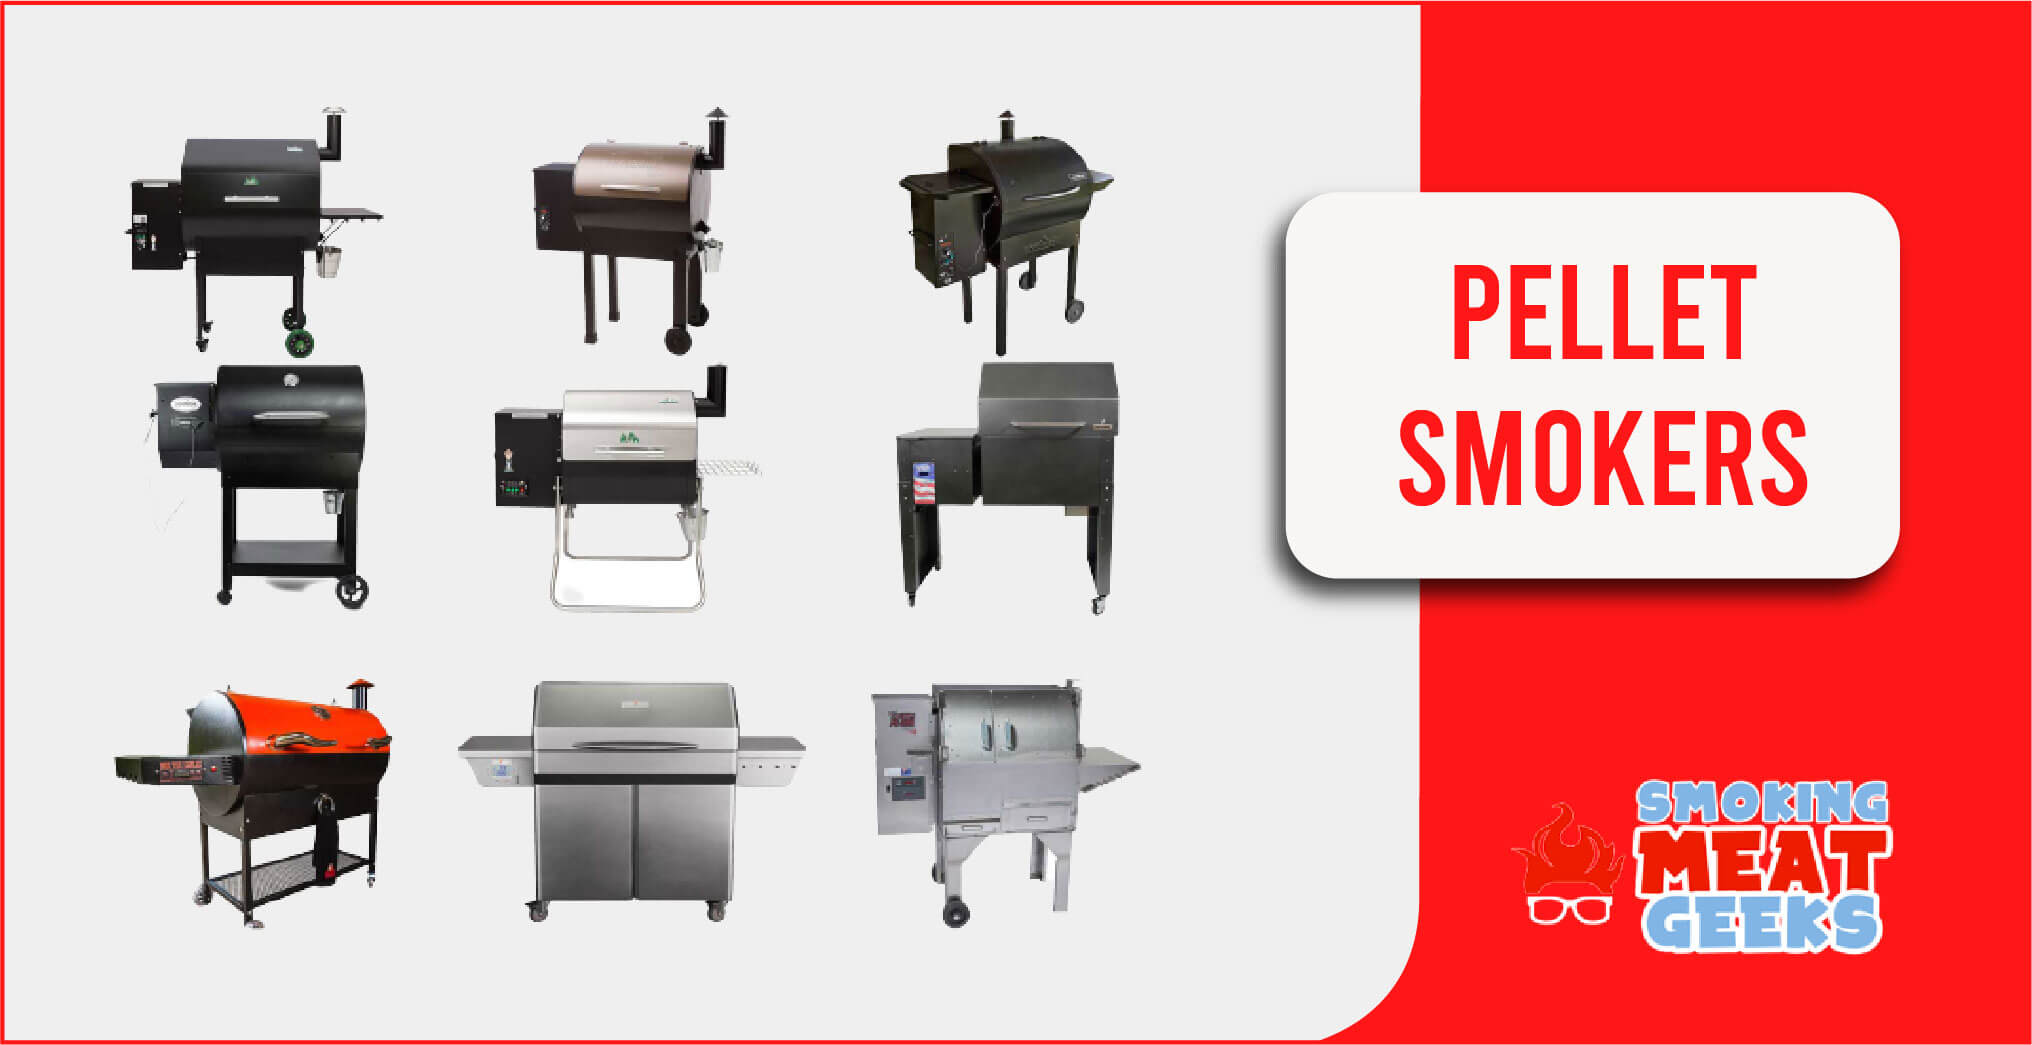 PELLET SMOKERS featured image